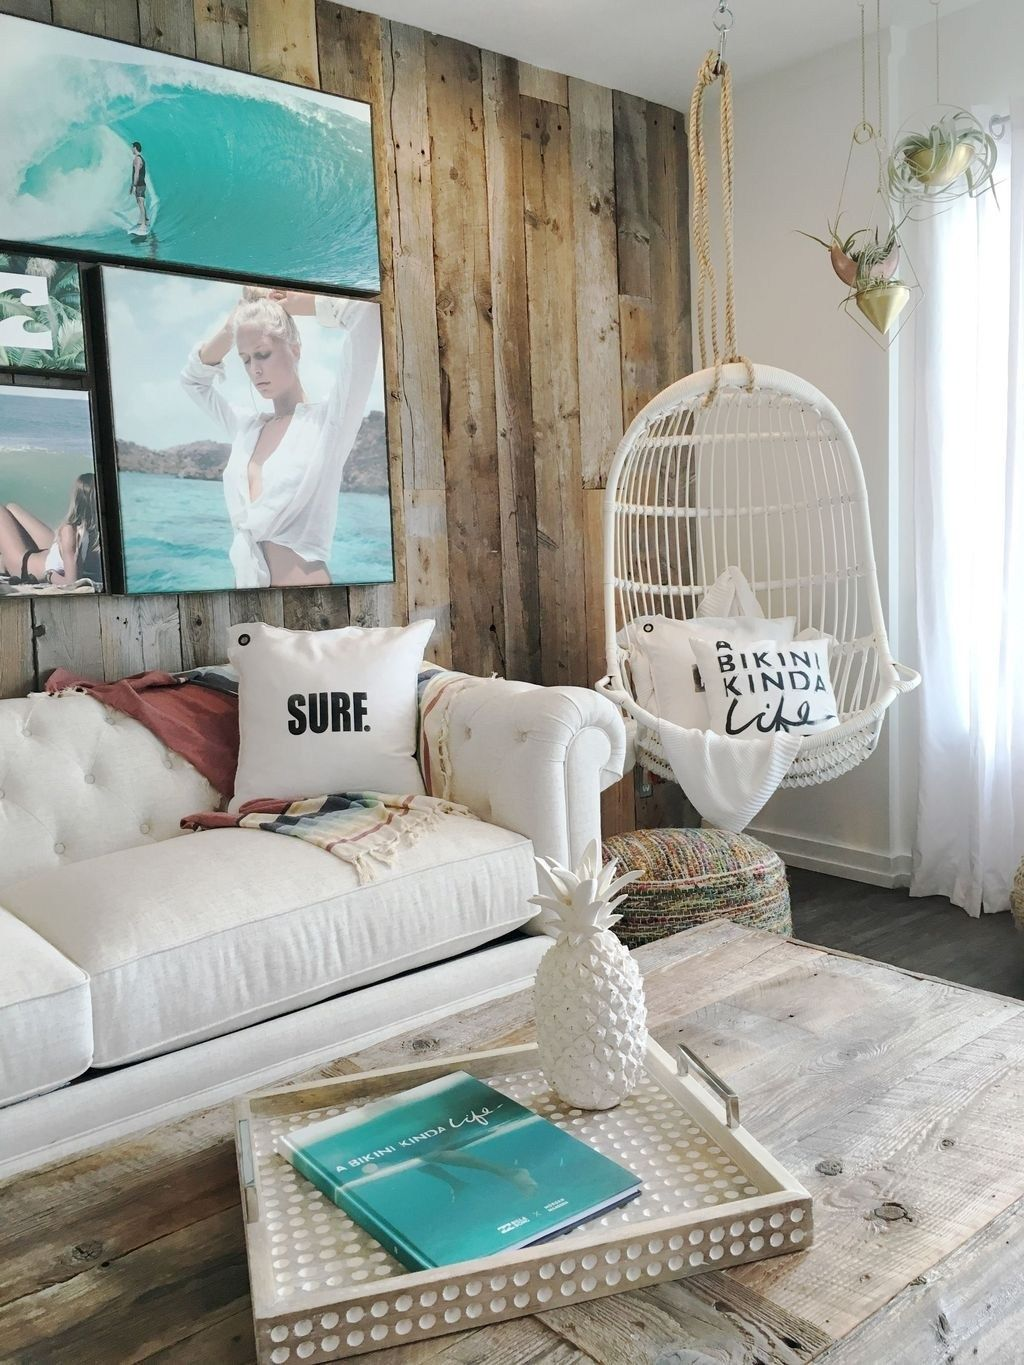 45 Awesome Rustic Coastal Decor Inspirations Ideas Home Decor